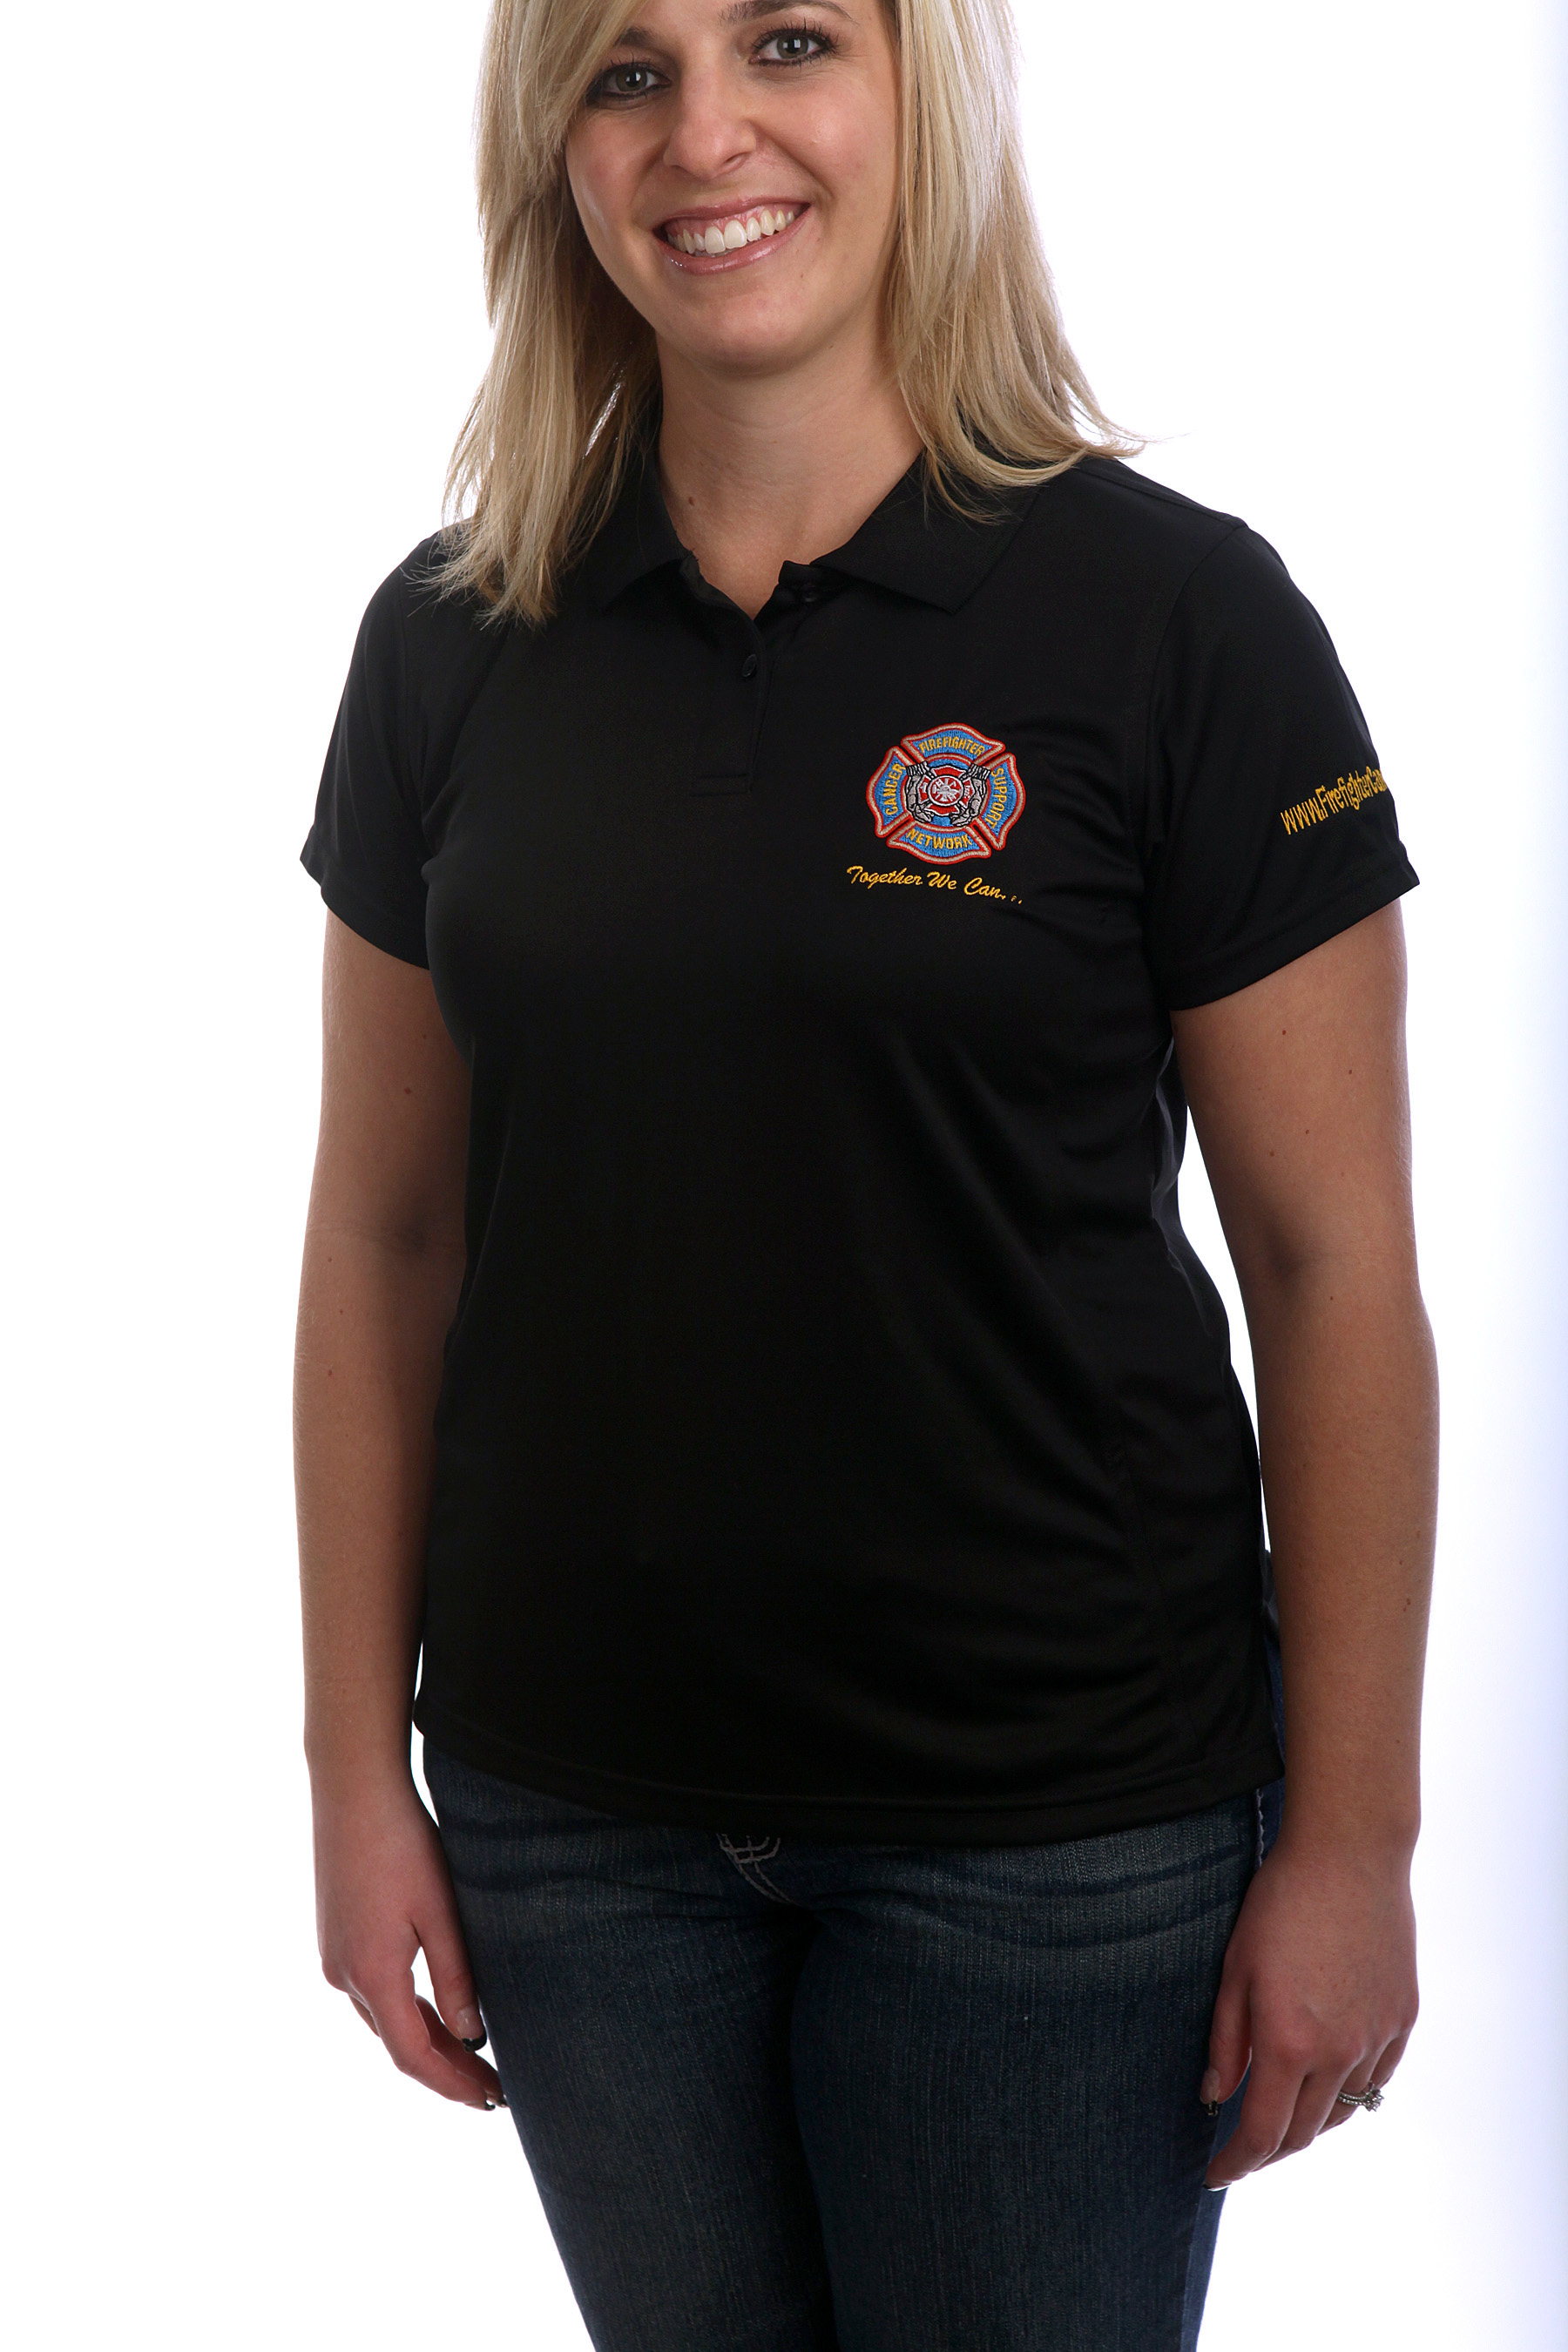 FCSN Women's Golf Shirt - Black